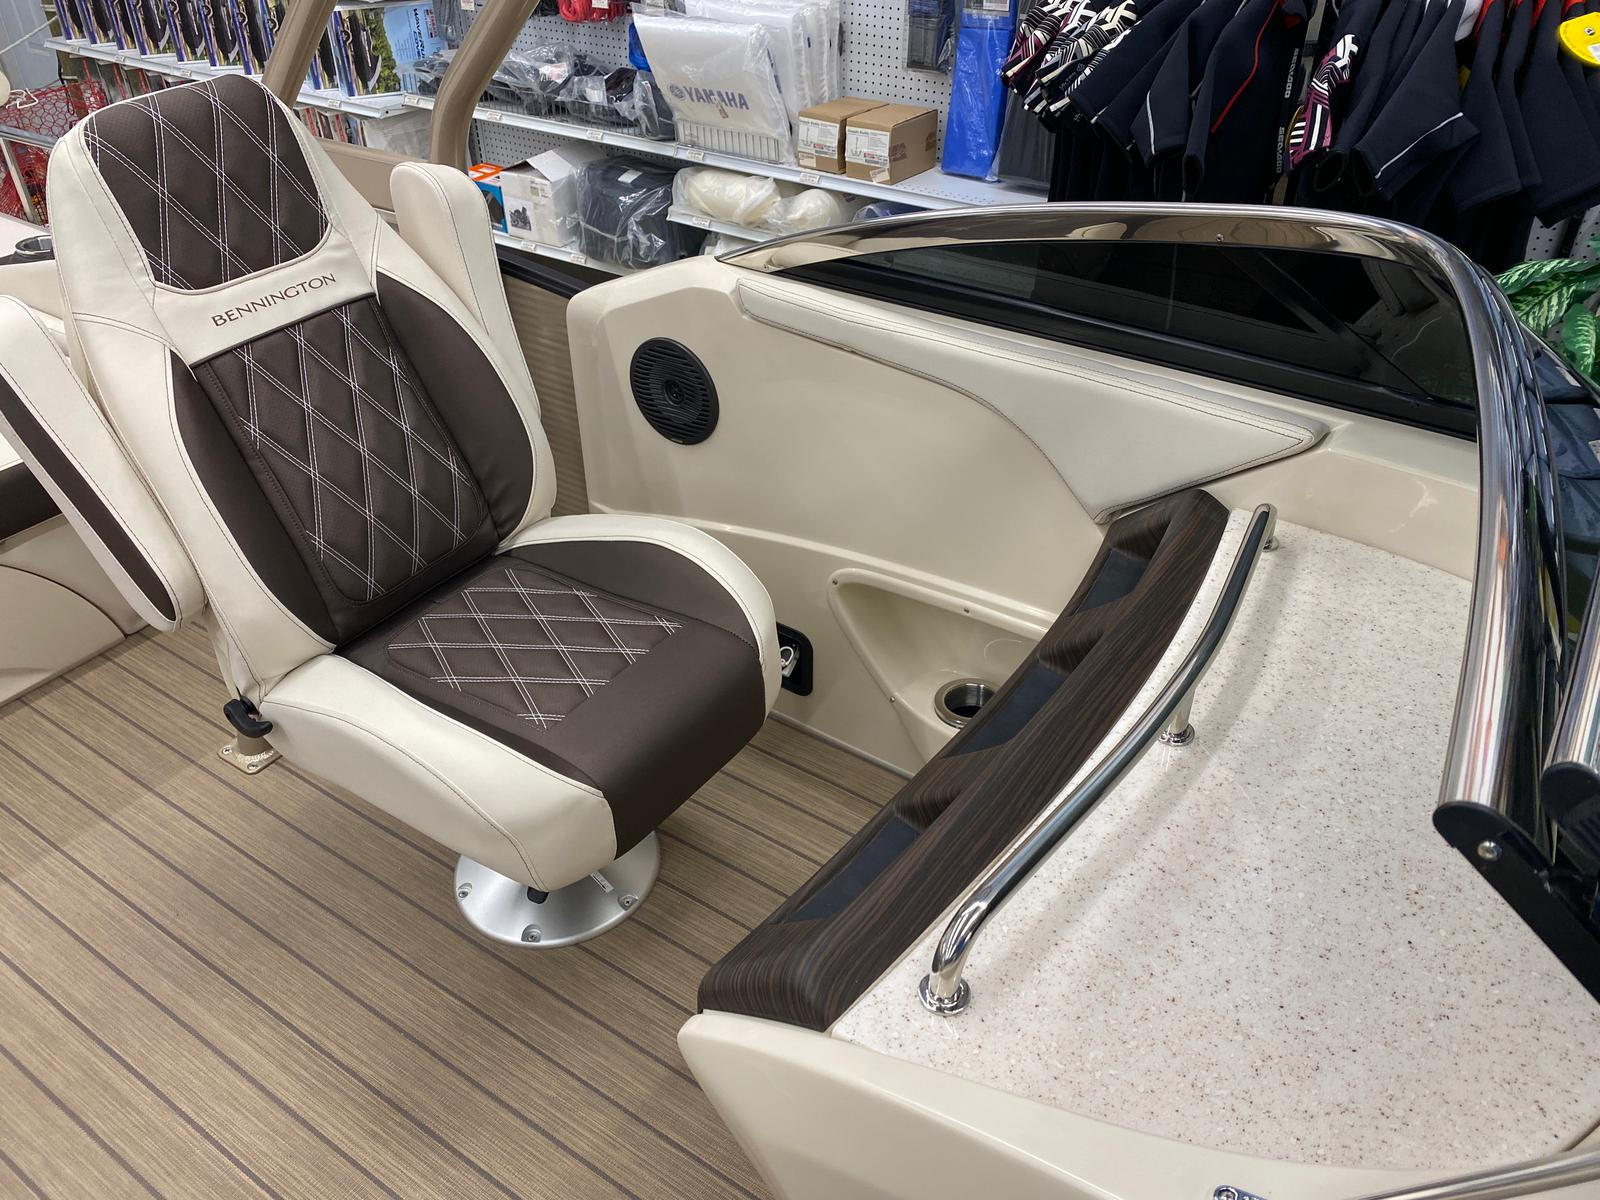 2021 Bennington boat for sale, model of the boat is 23 RSBWA WSHLD DLX Fold Open SP Arch Tri-Toon ESP Package & Image # 22 of 25